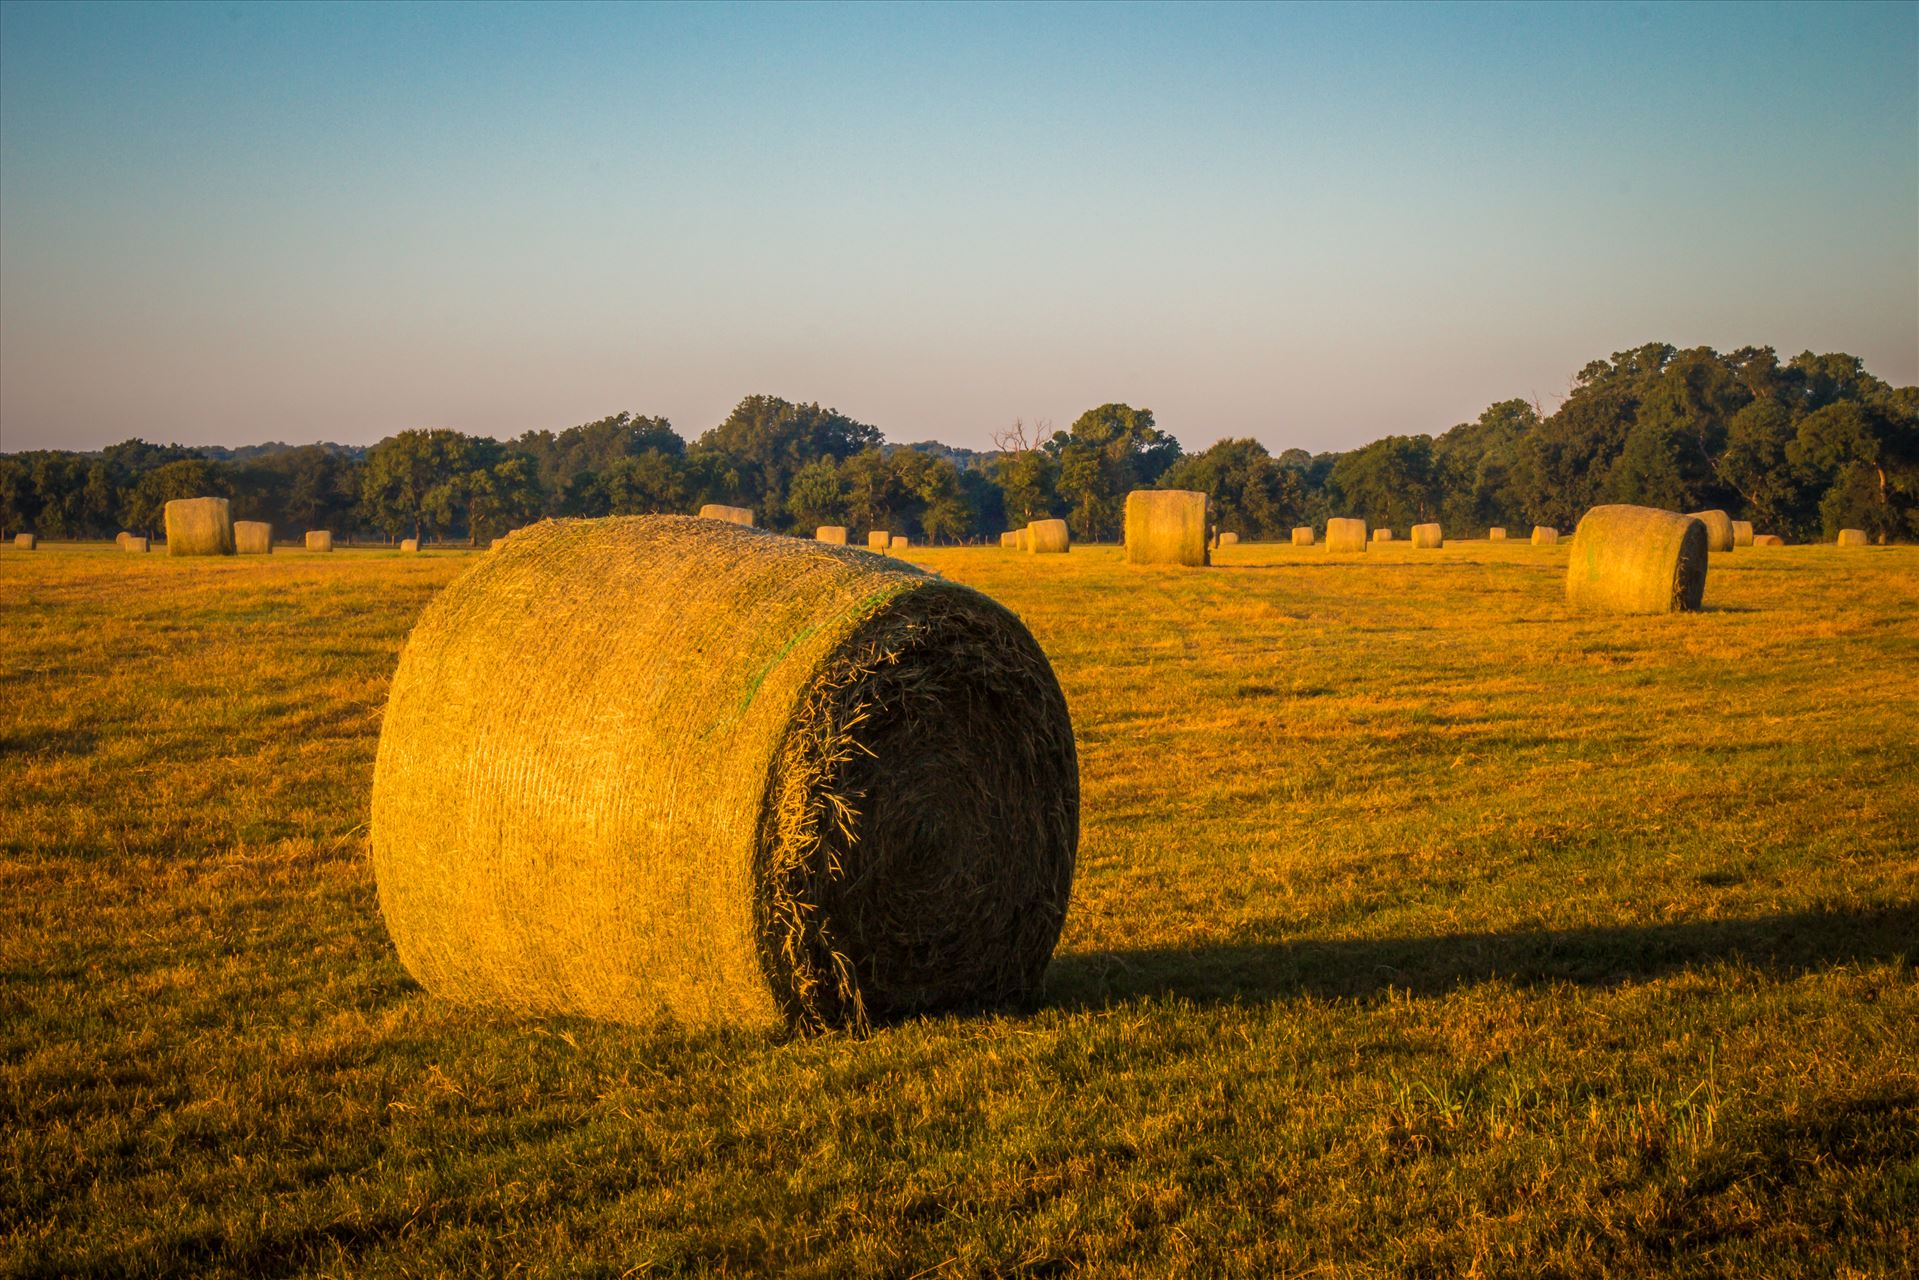 20170819_Hay Field_022.jpg -  by Charles Smith Photography